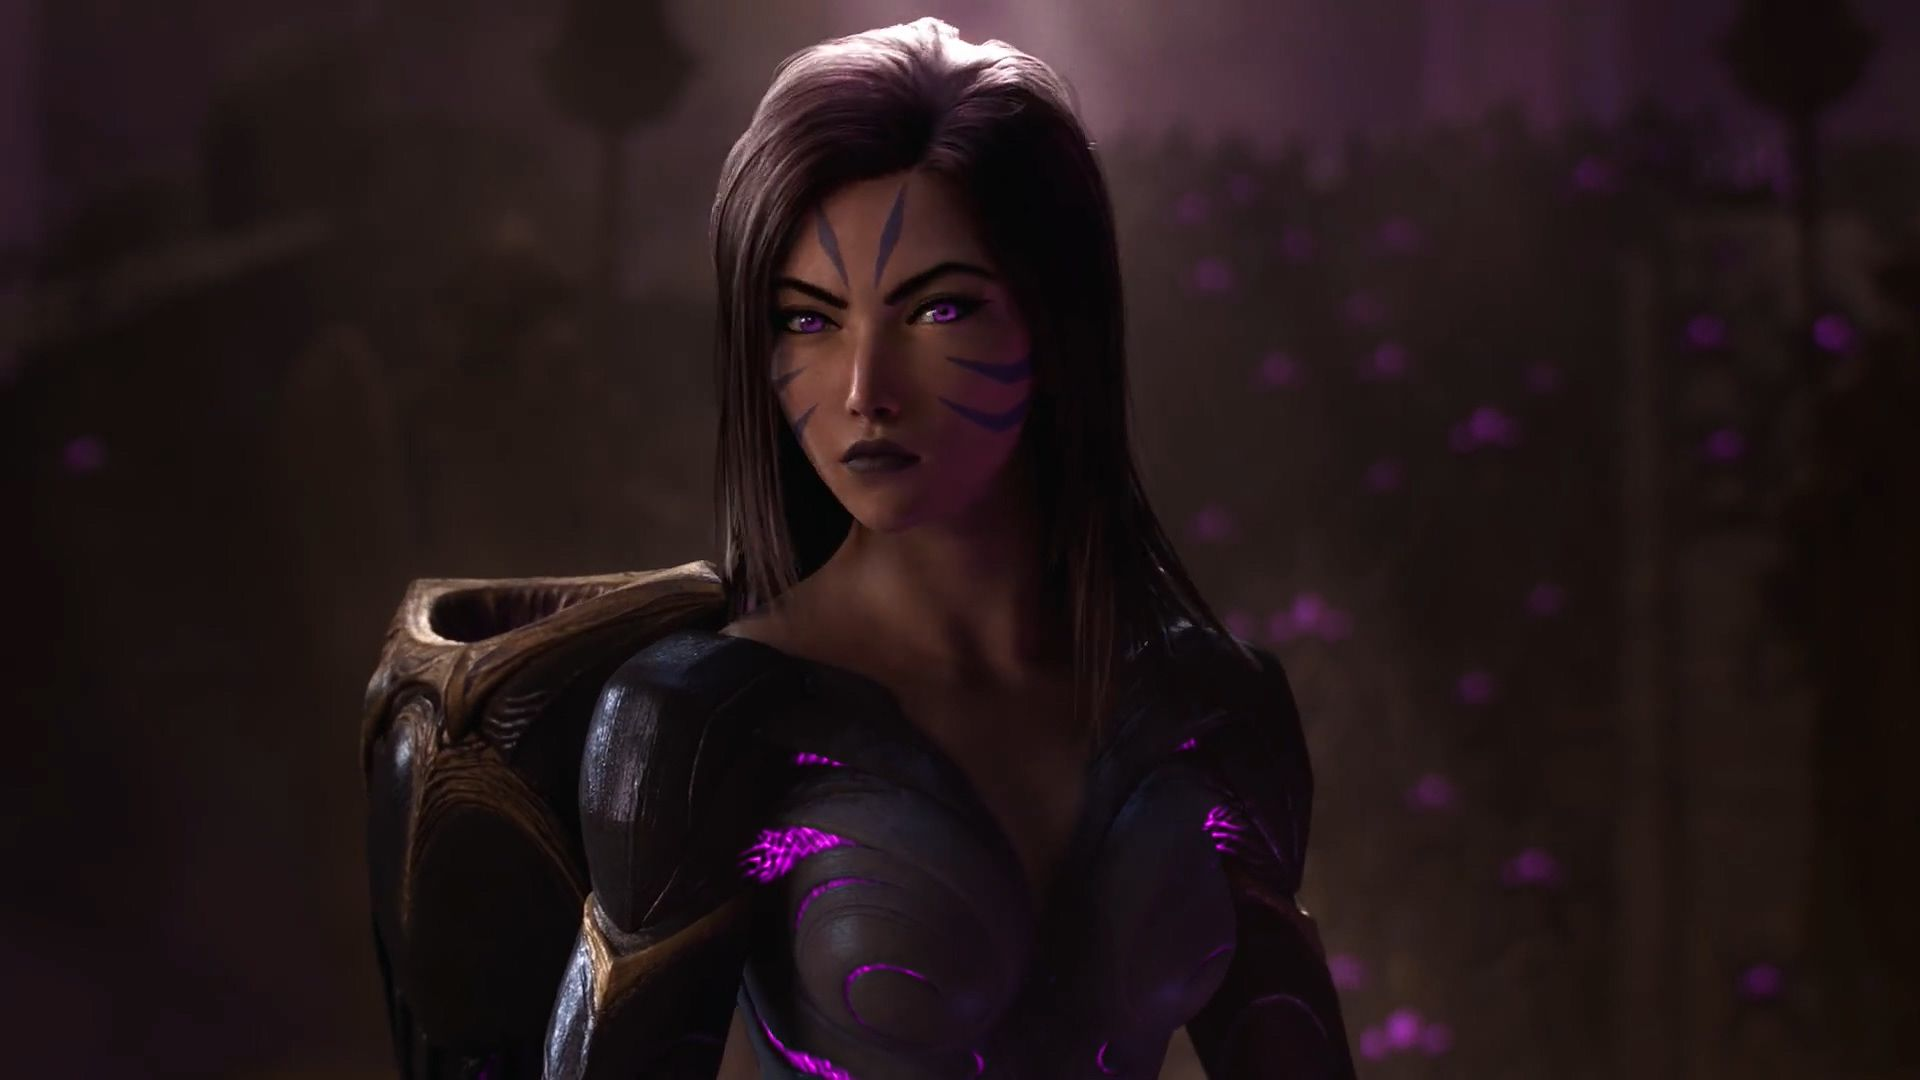 Warriors Season 2020 Cinematic Wallpapers From Animated Music Video Artist Riot Games League Of Legends Waifu Clan Anime Pics Digital Art